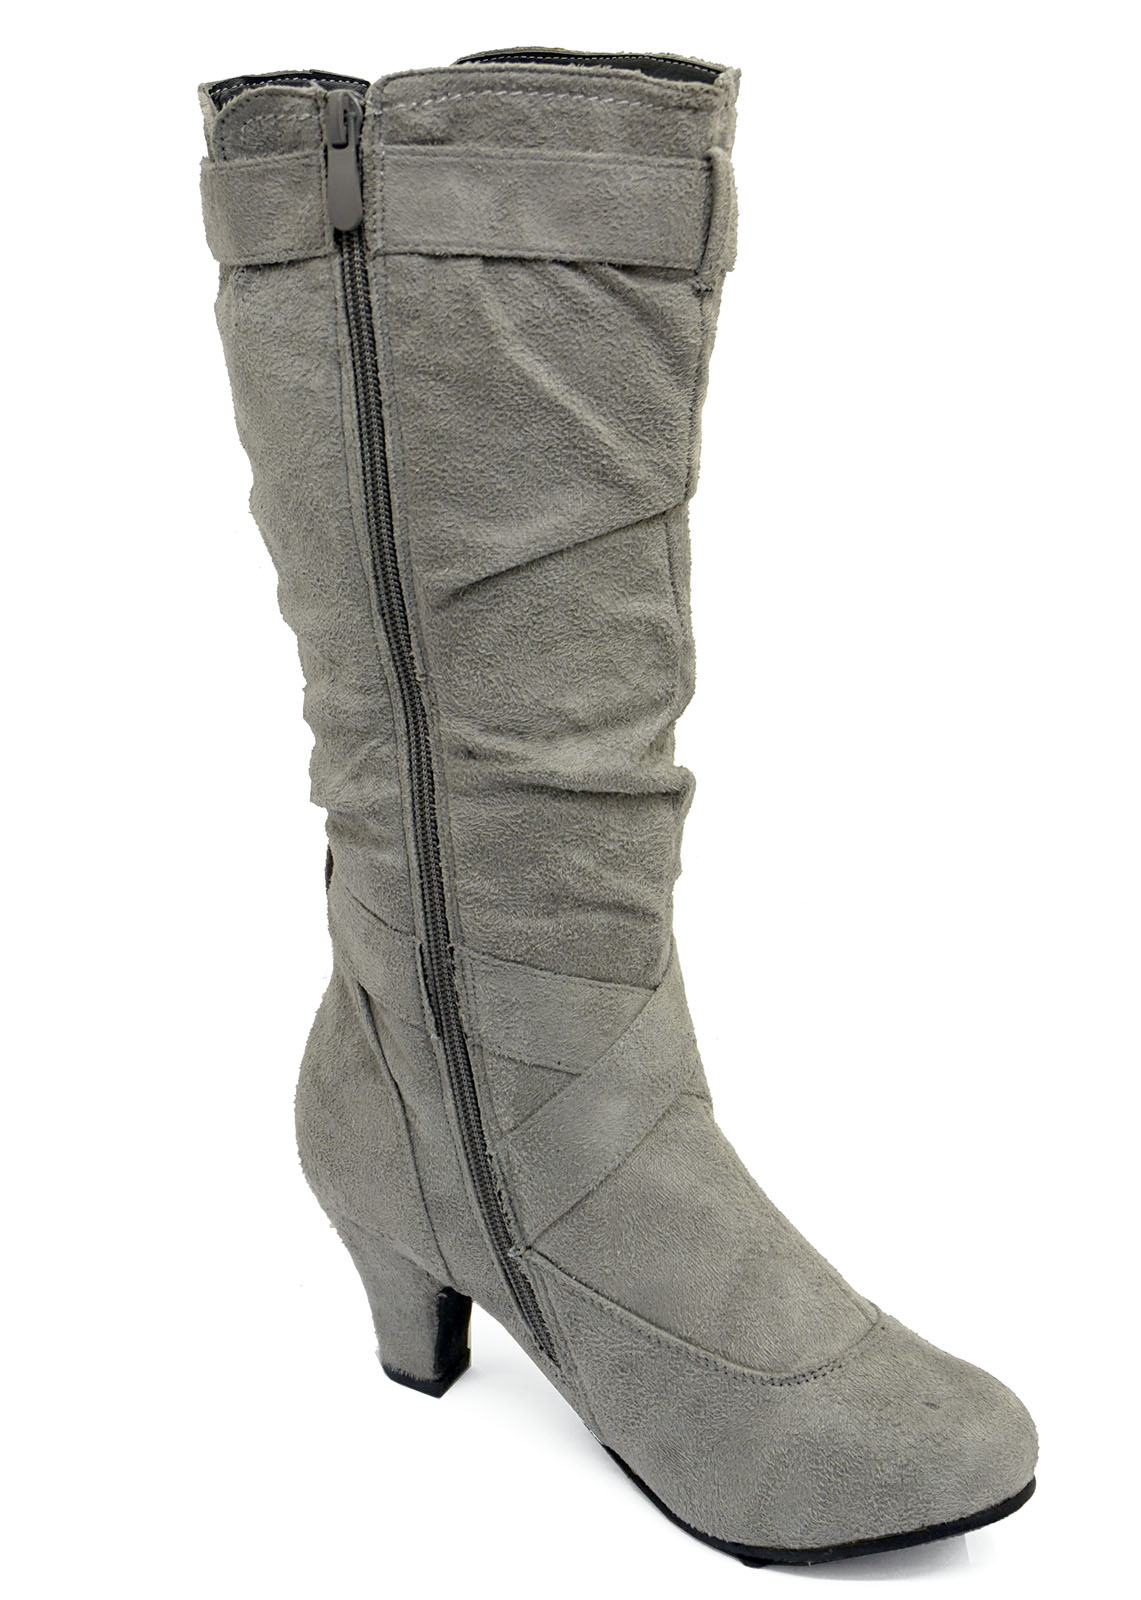 LADIES-GREY-ZIP-UP-BIKER-SLOUCH-RUCHED-TALL-KNEE-CALF-LOW-HEEL-BOOTS-SHOES-4-10 thumbnail 7